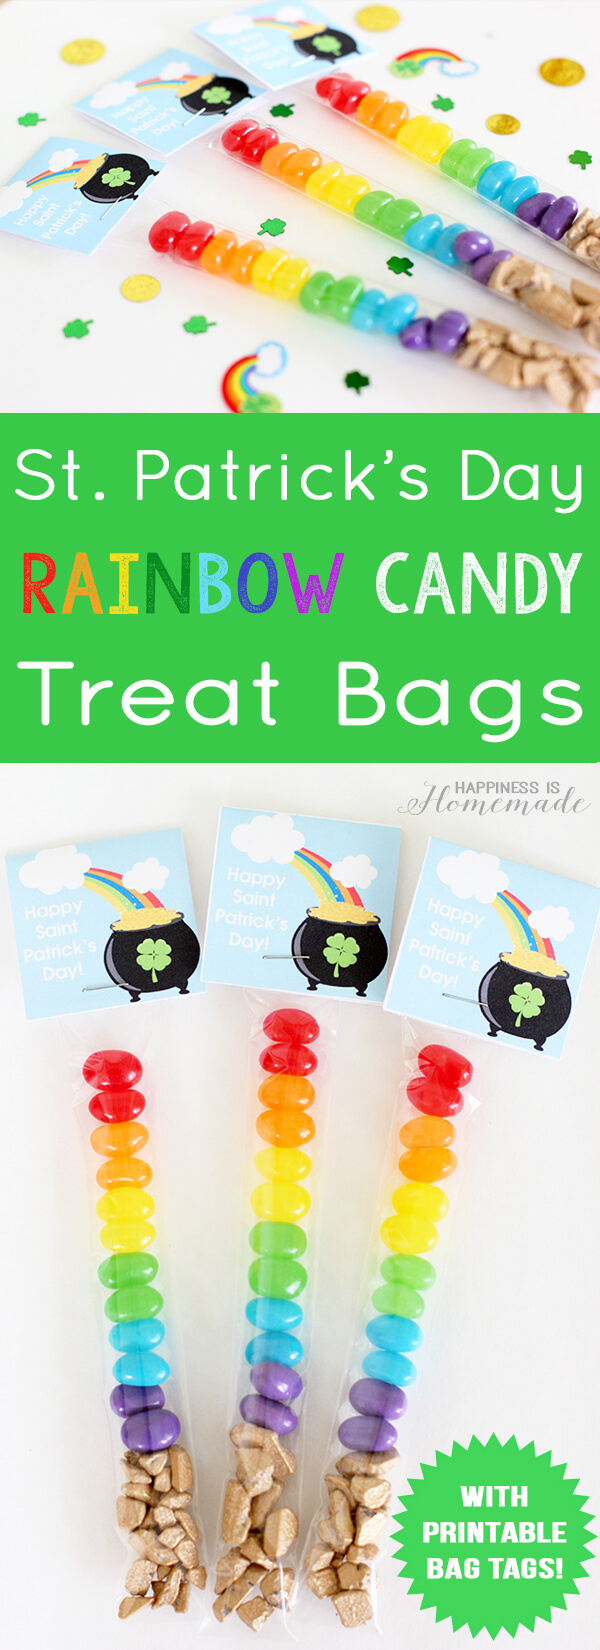 St Patrick's Day Rainbow Candy Treat Bags and Free Printable Toppers